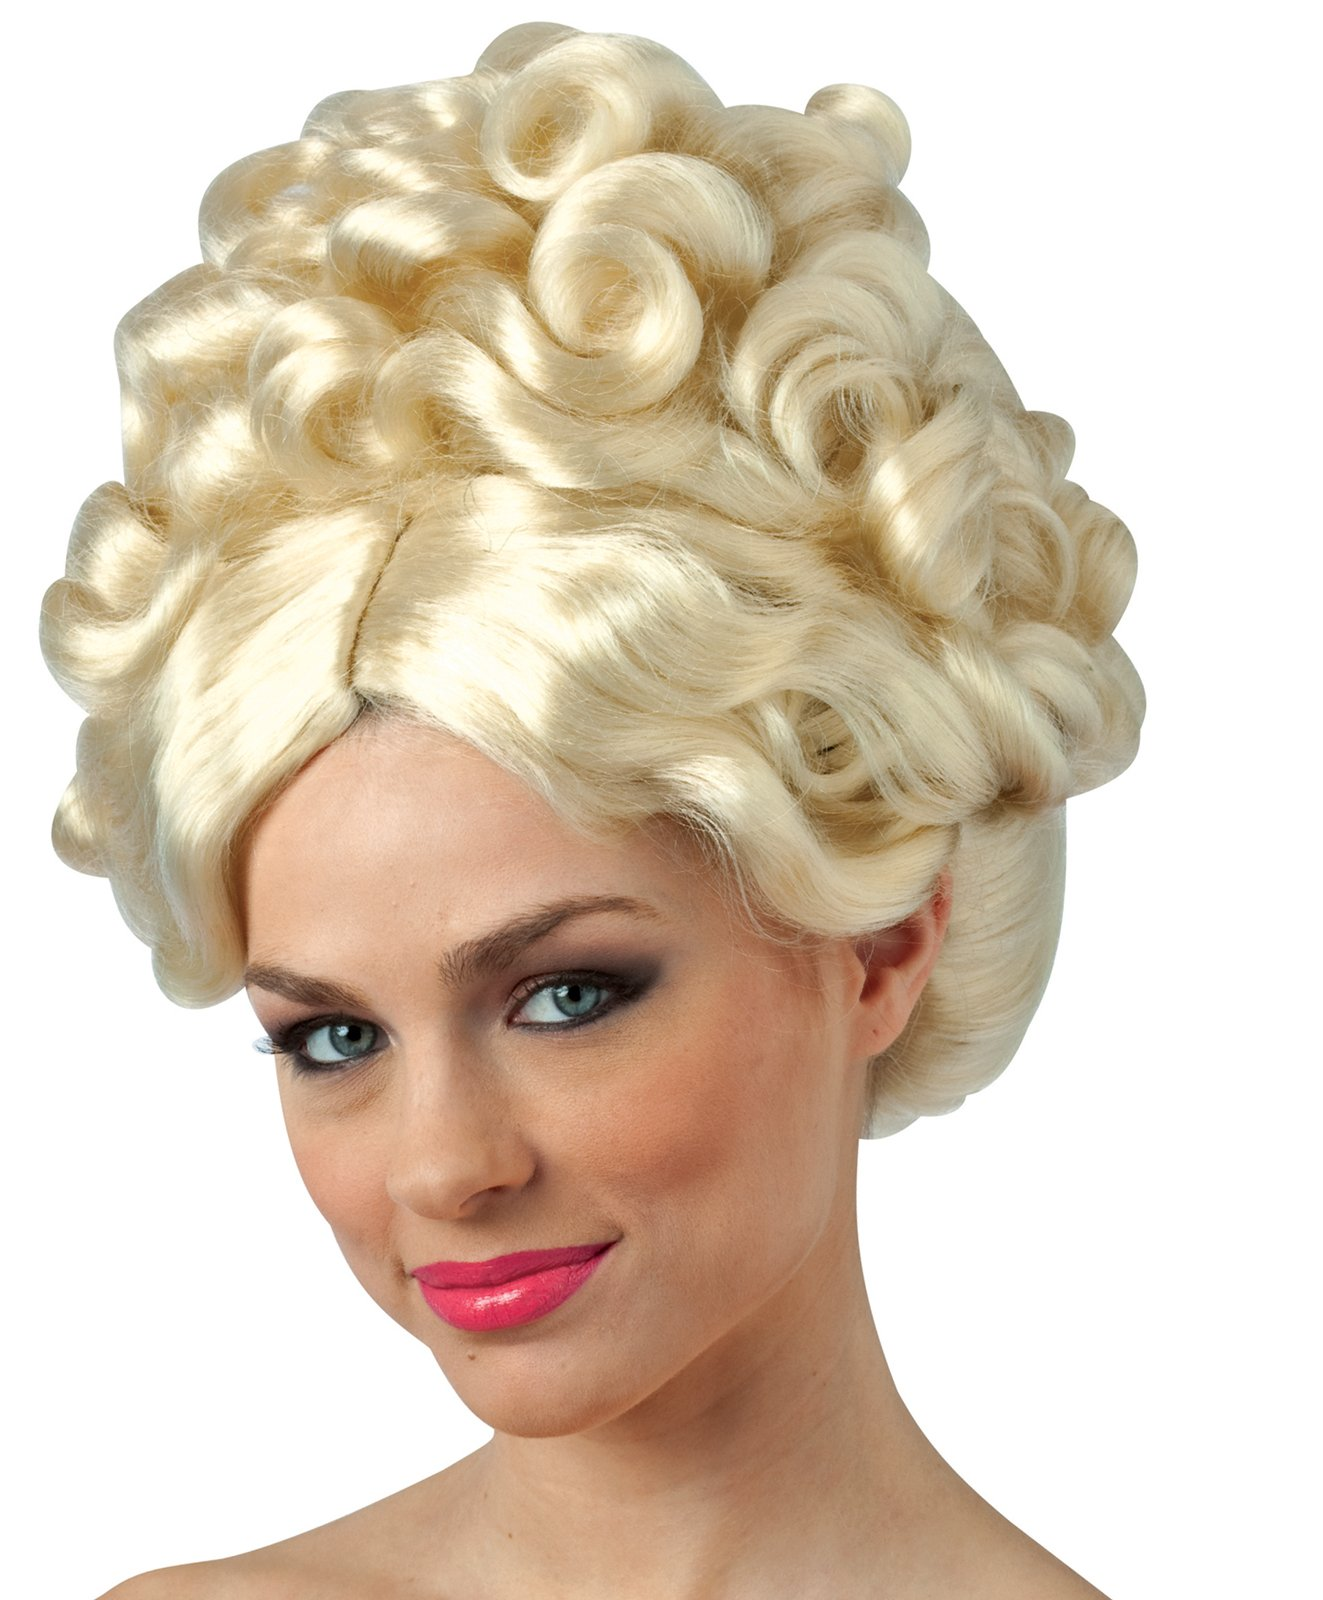 Toddler and Tiara Blonde Adult Wig